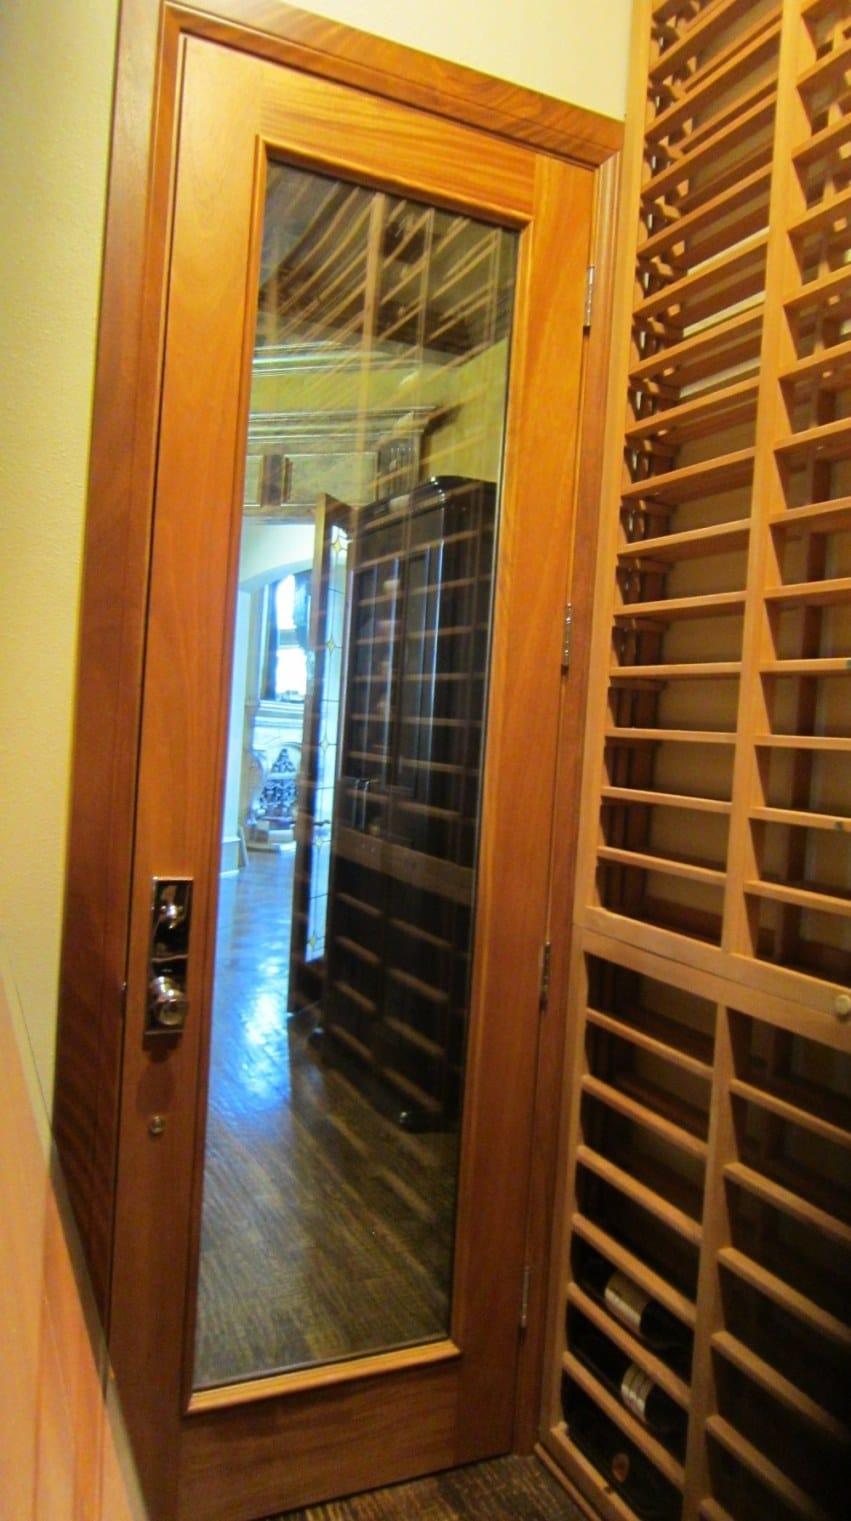 View-of-the-Wine-Cellar-Door-from-Inside-of-Houston-Wine-Cellar